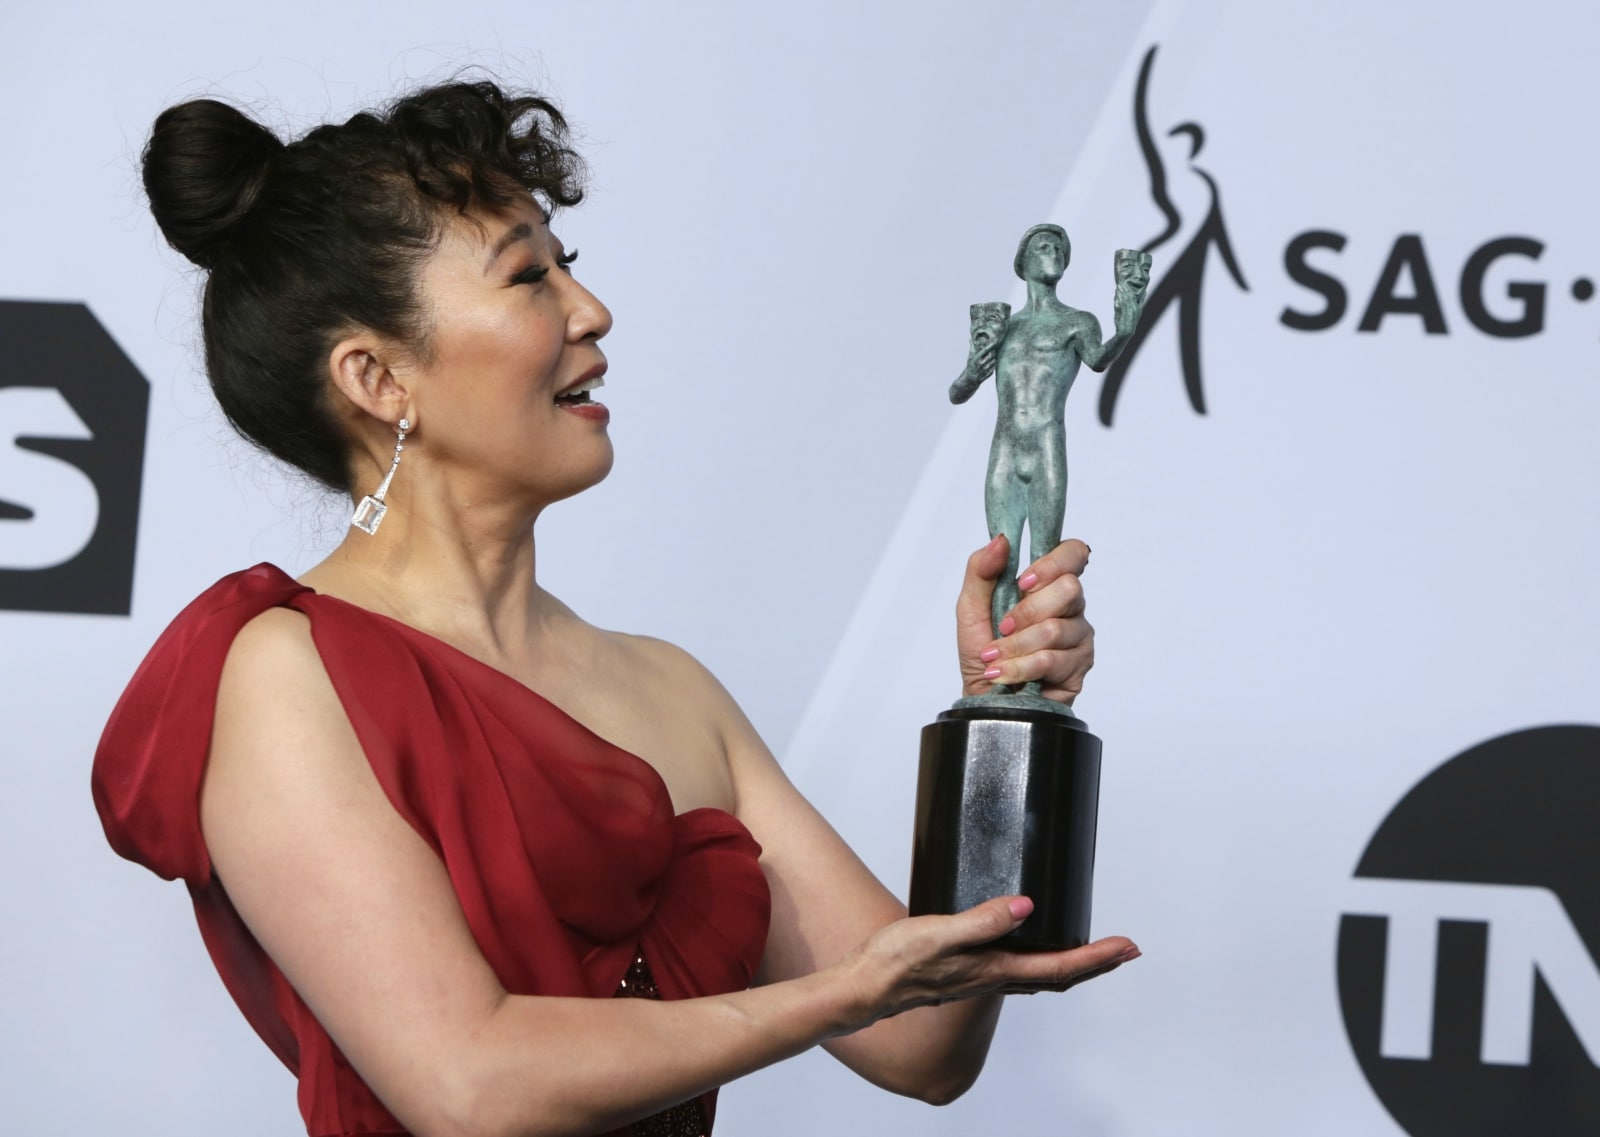 25th Screen Actors Guild Awards – Photo Room – Los Angeles, California, US, January 27, 2019 - Sandra Oh poses backstage with her Outstanding Performance by a Female Actor in a Drama Series award for